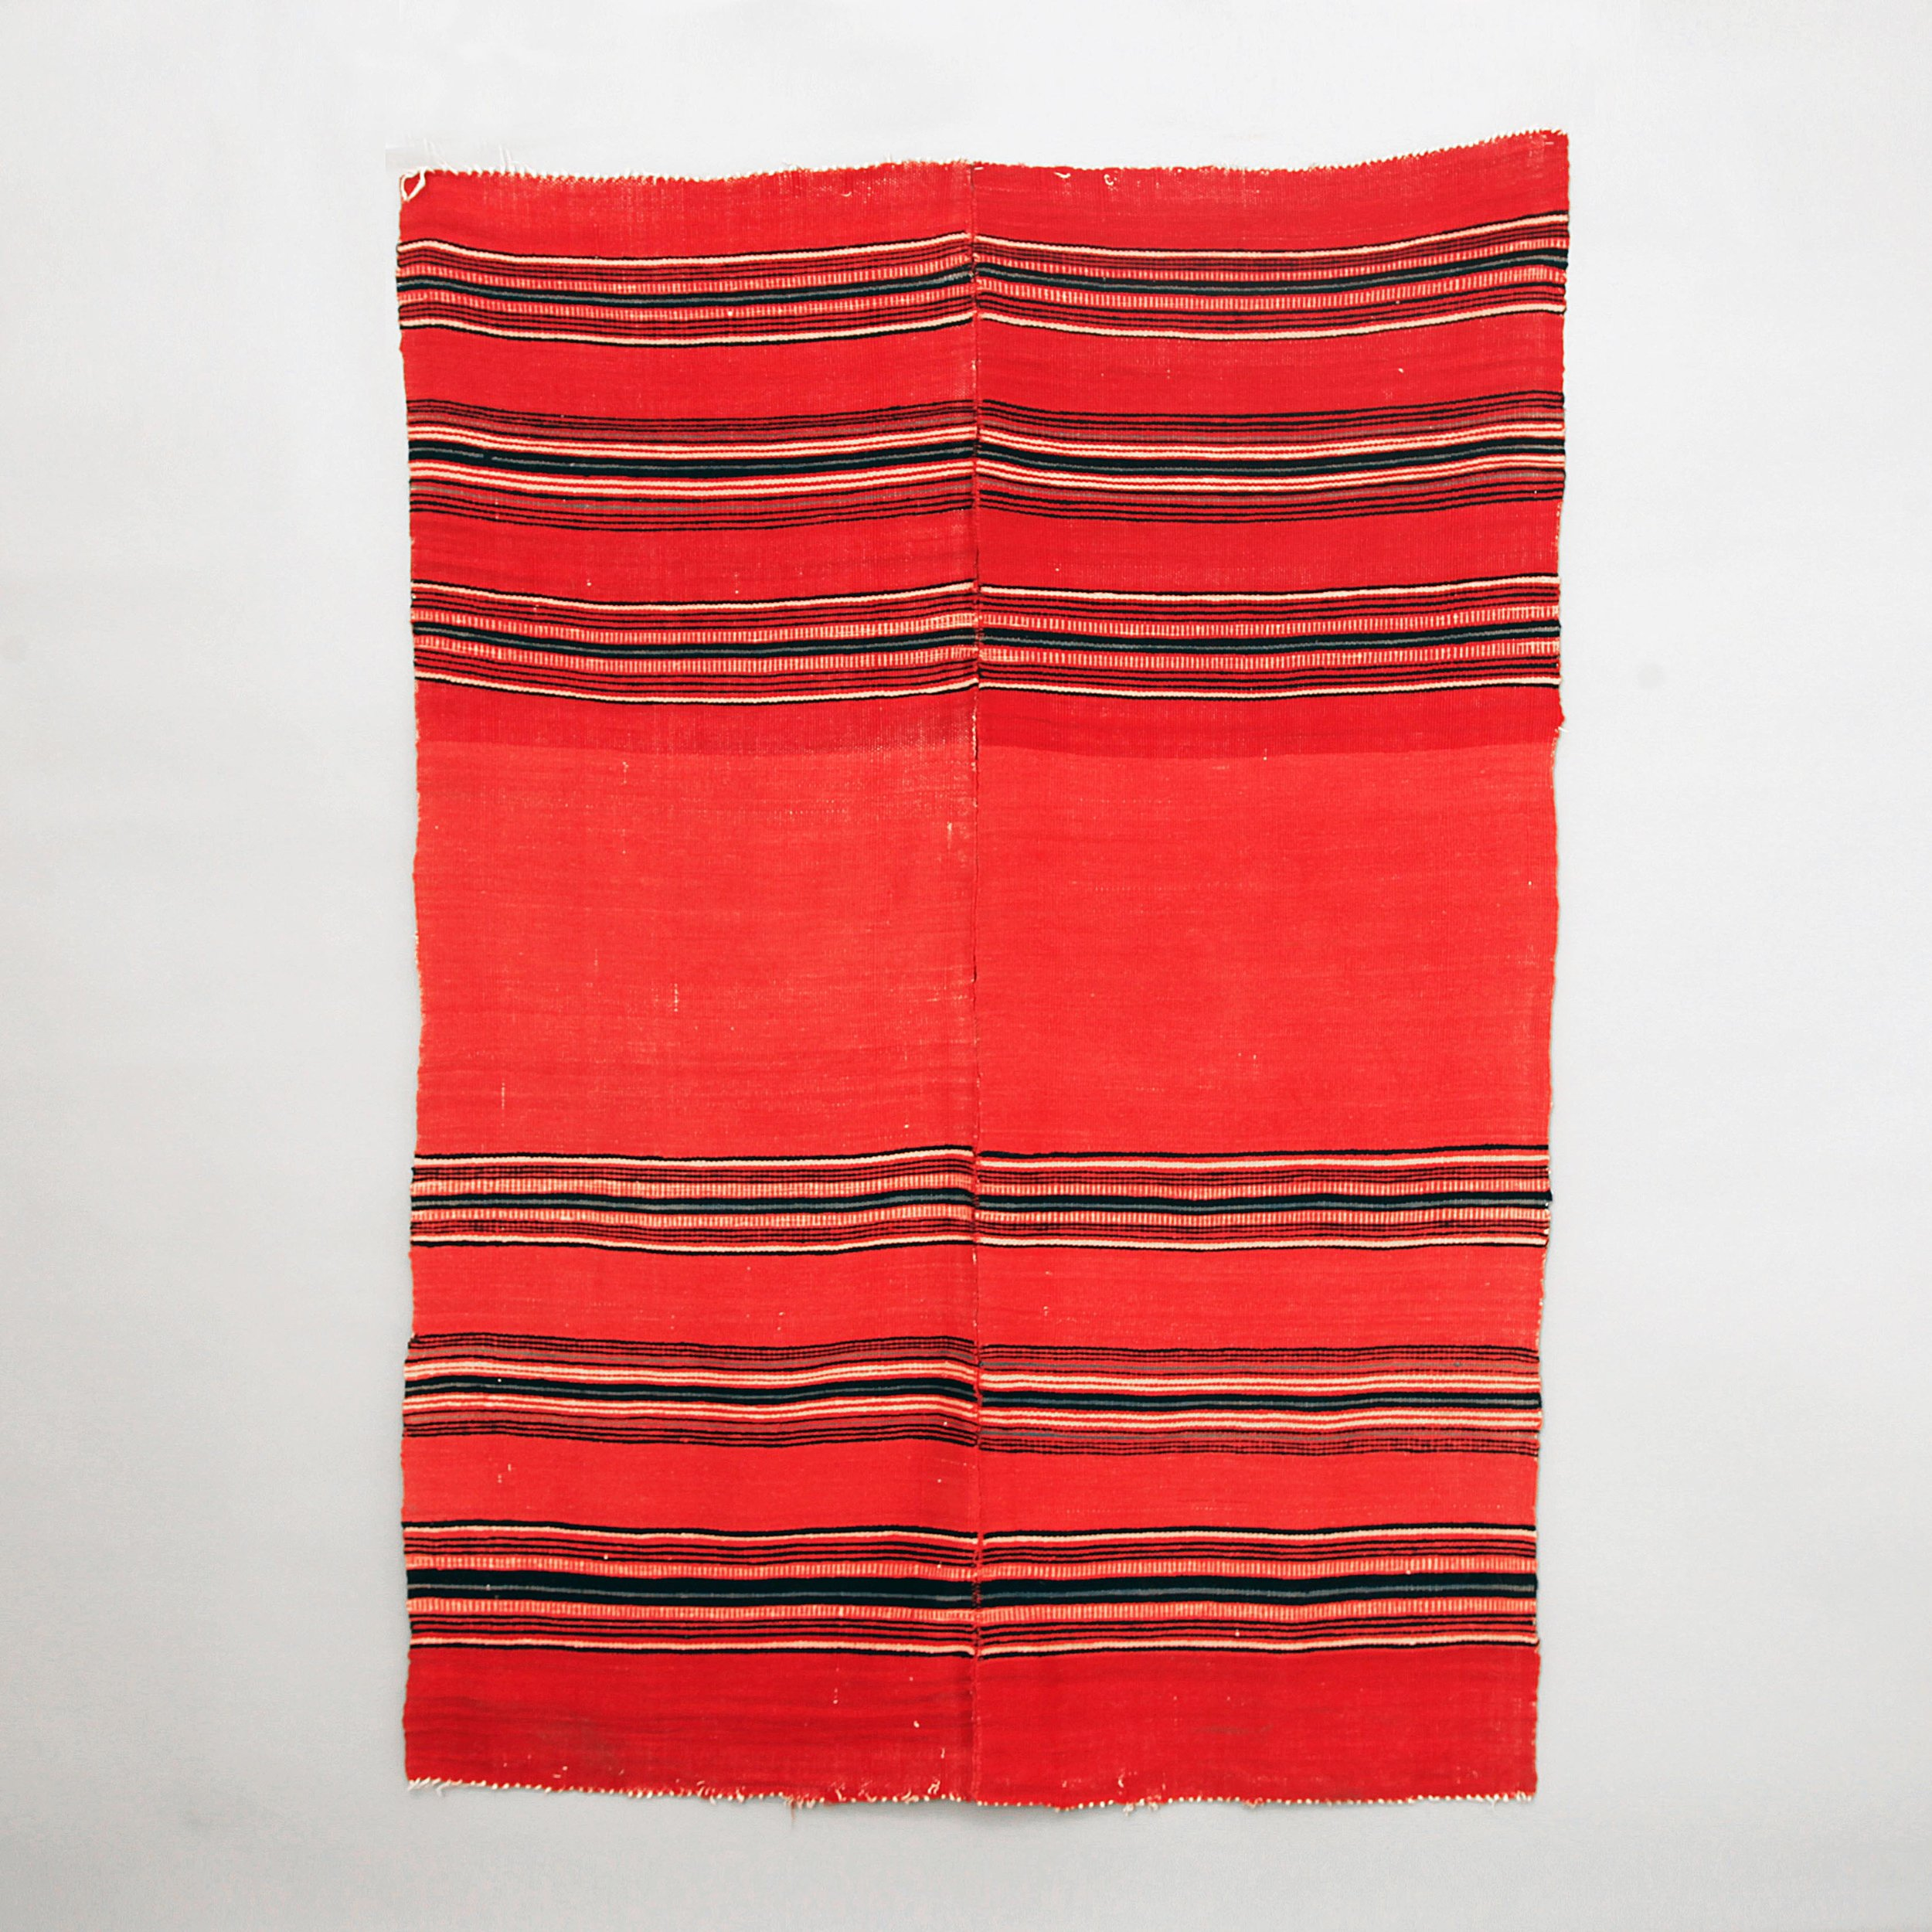 Red Rug1a.jpg